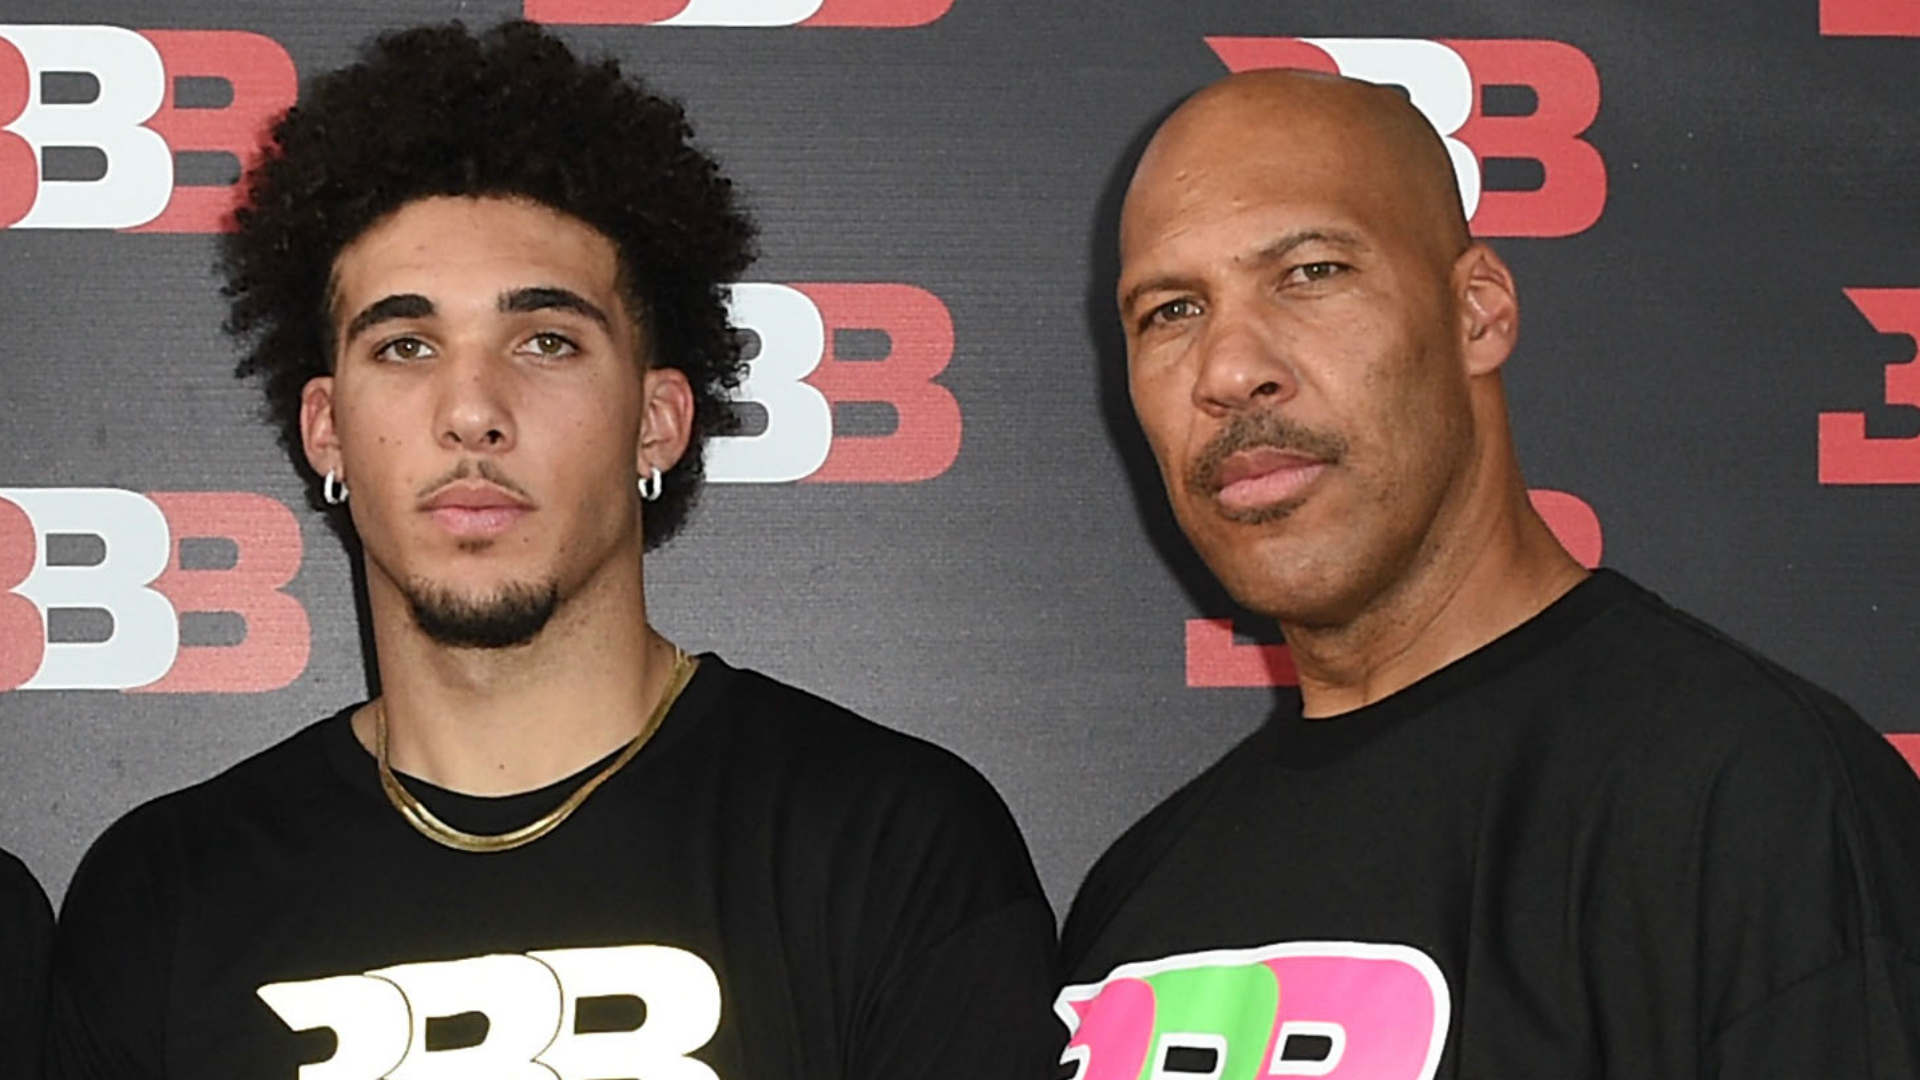 LaVar Ball: Withdrawing suspended son to prepare for National Basketball Association